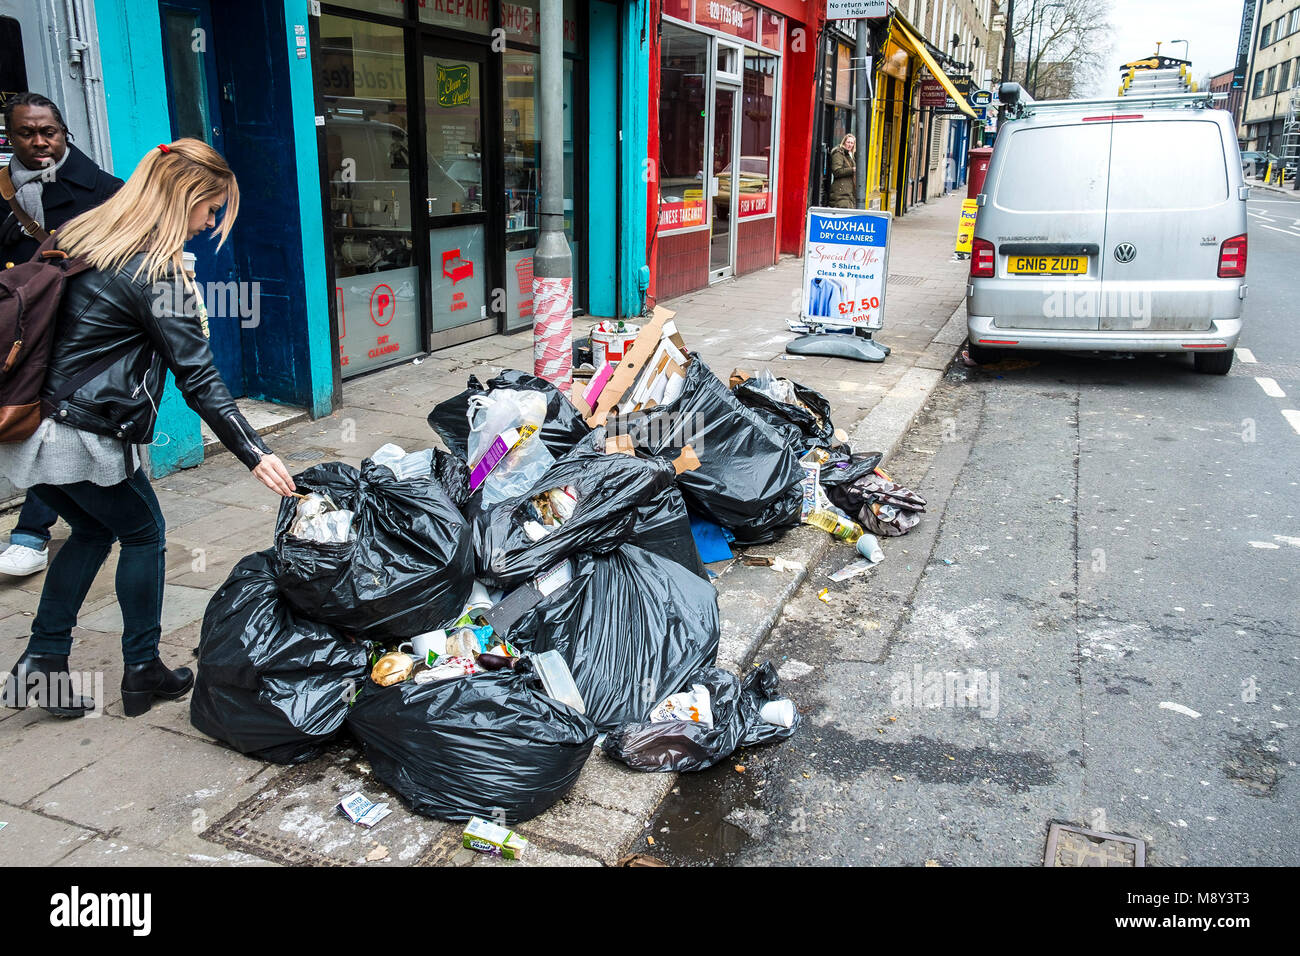 A pile of refuse black bags piled up on a pavement in Lambeth London. - Stock Image